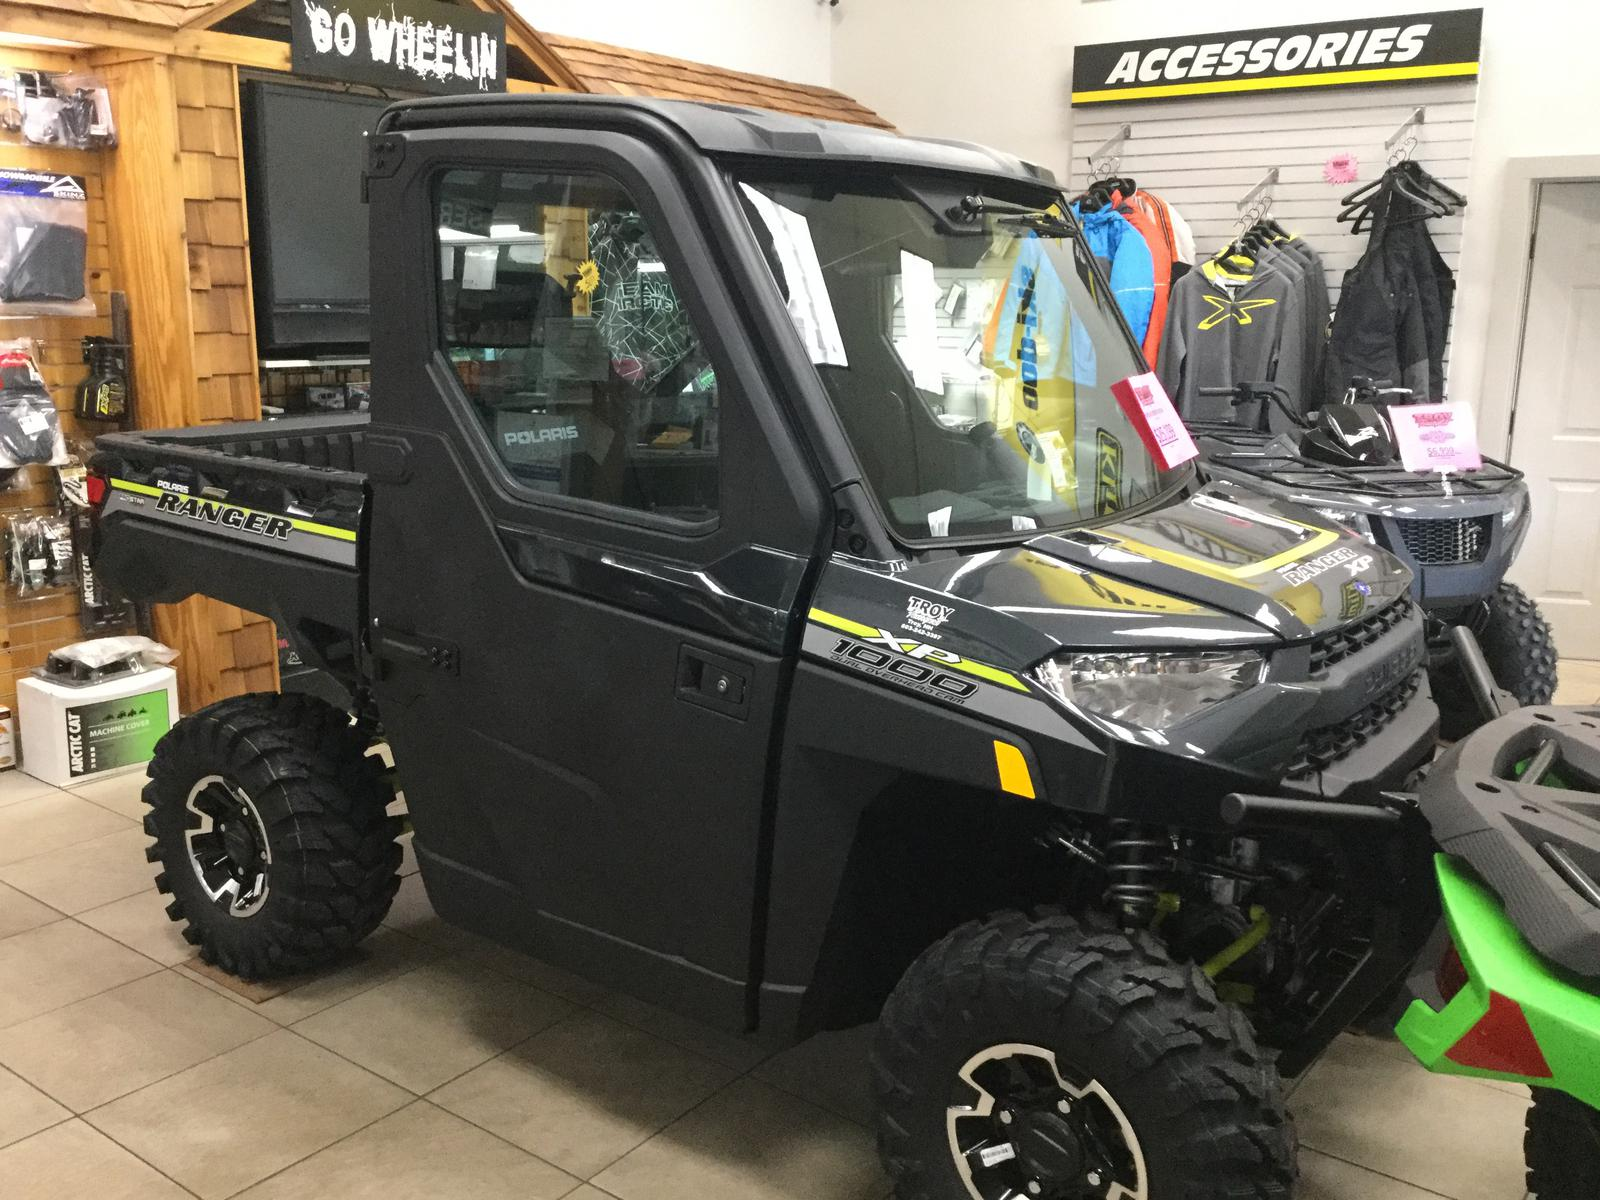 New Inventory from Can-Am and Polaris Industries Troy